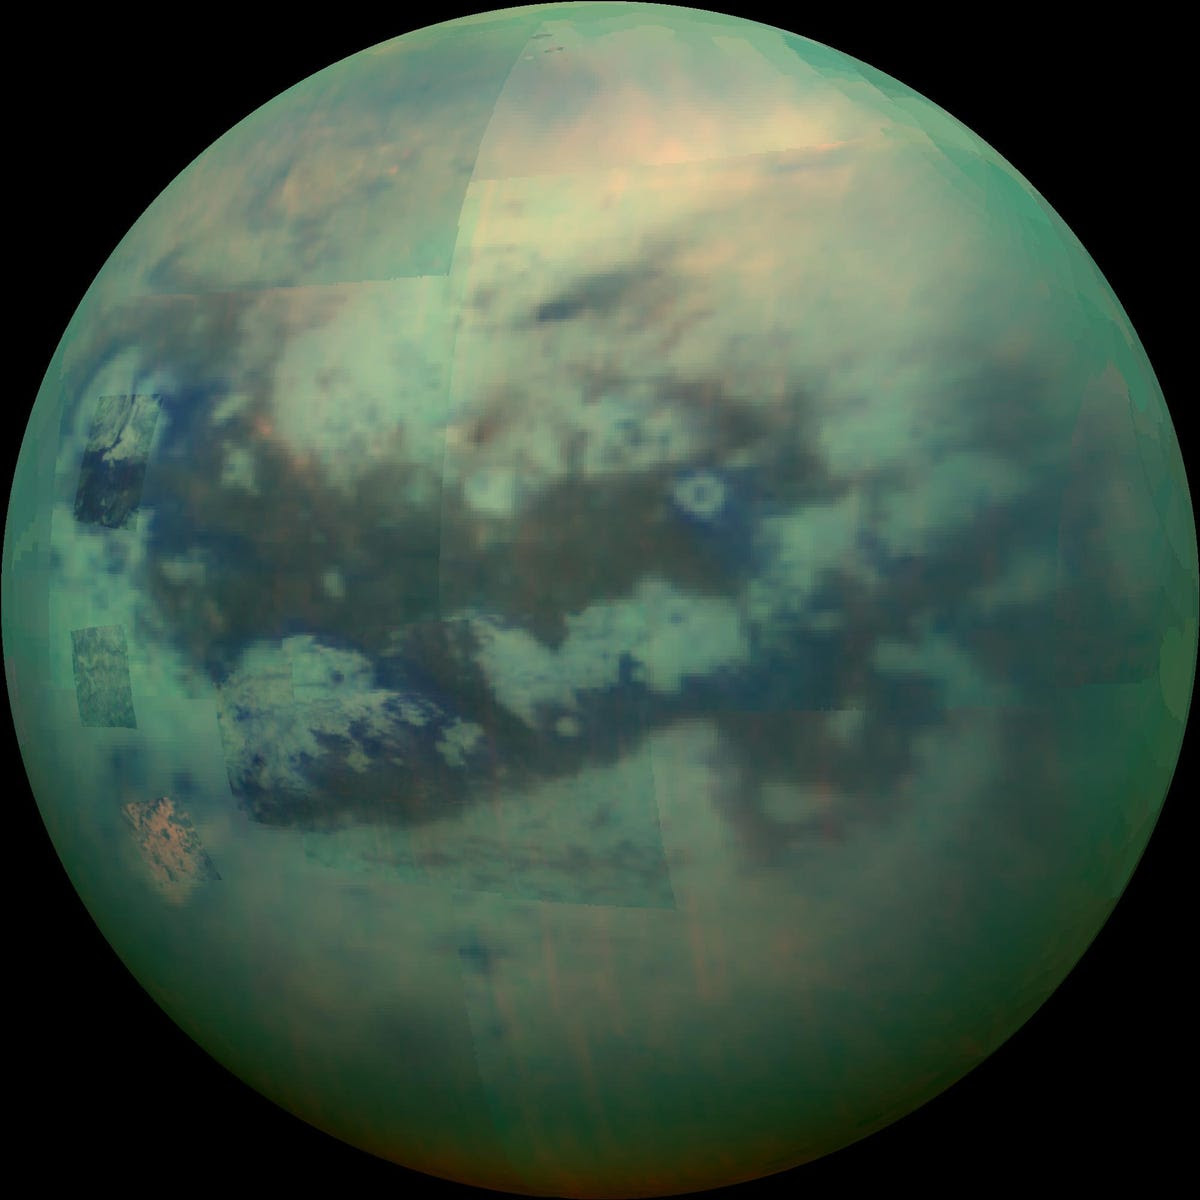 Near-infrared photos cut through Titan's clouds and haze to reveal its complex surface.